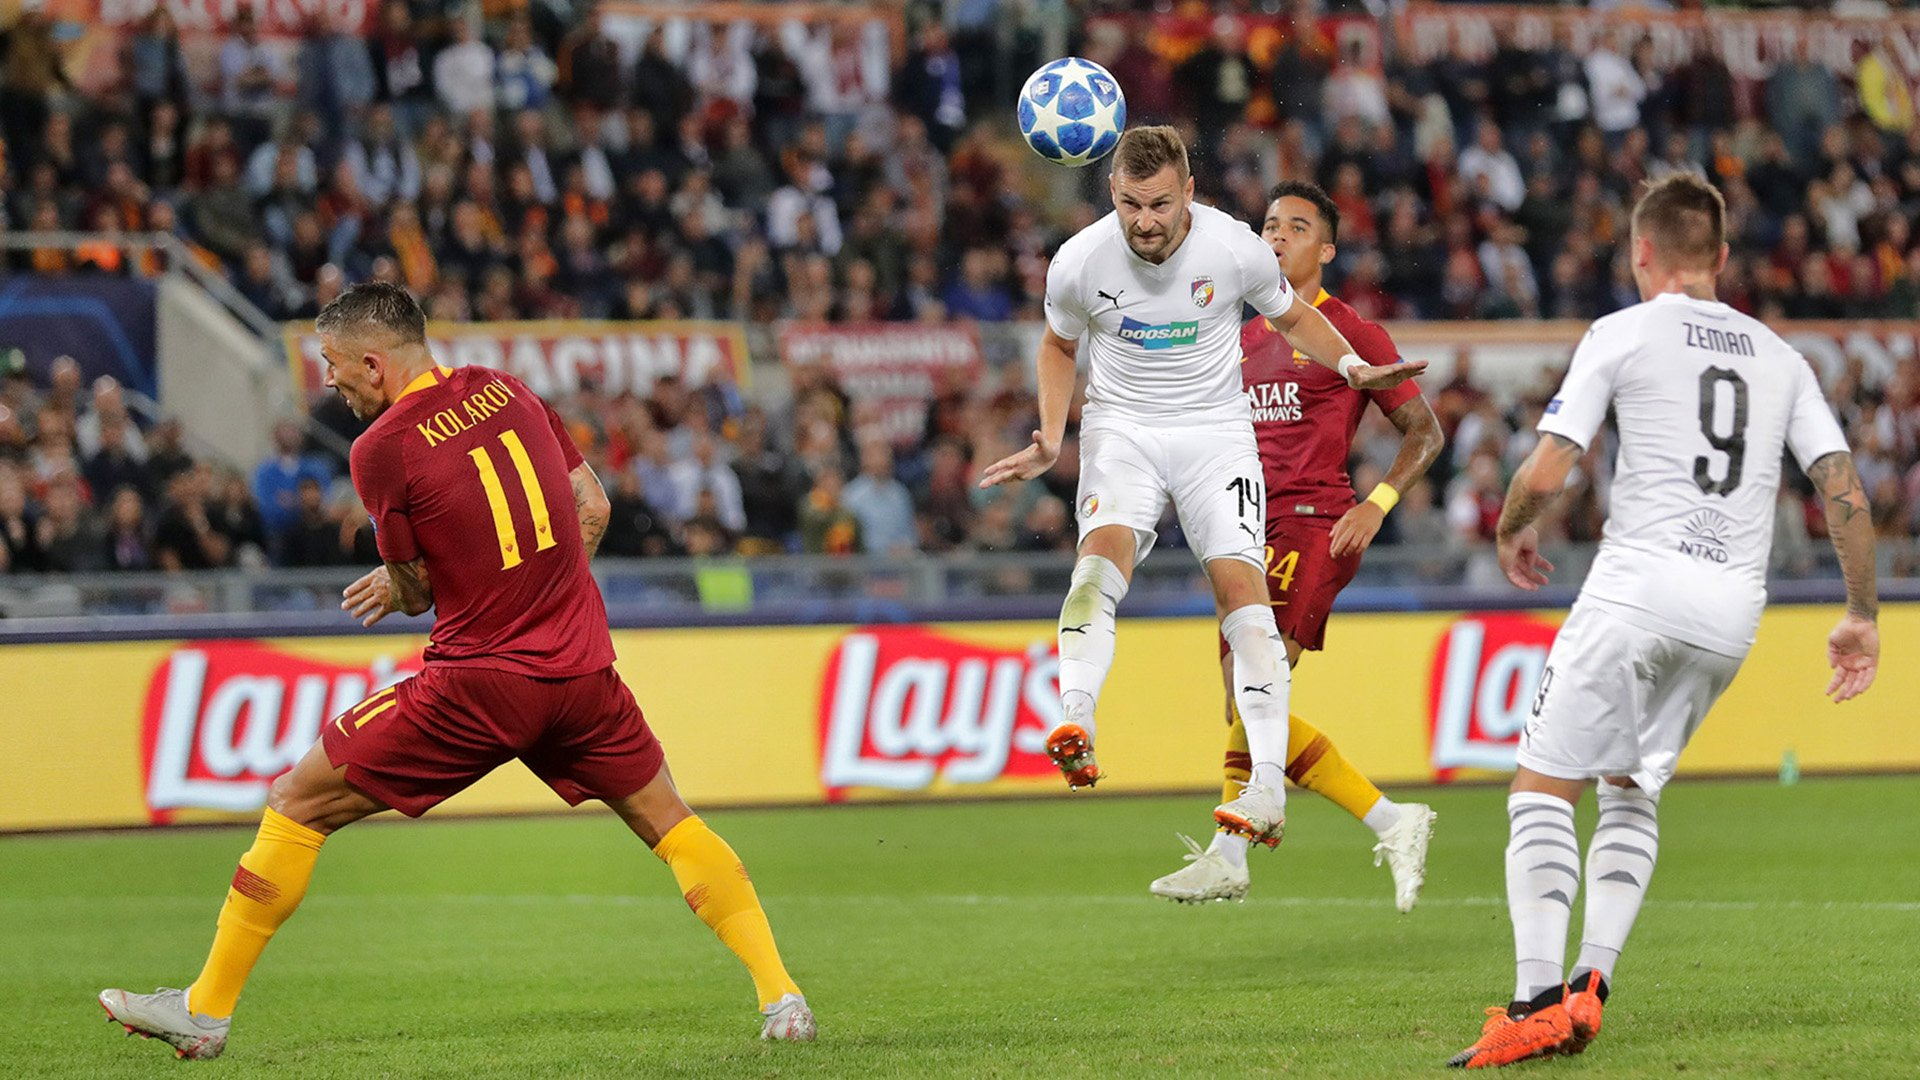 AS Roma were the better side on Tuesday night, Džeko scores hat-trick